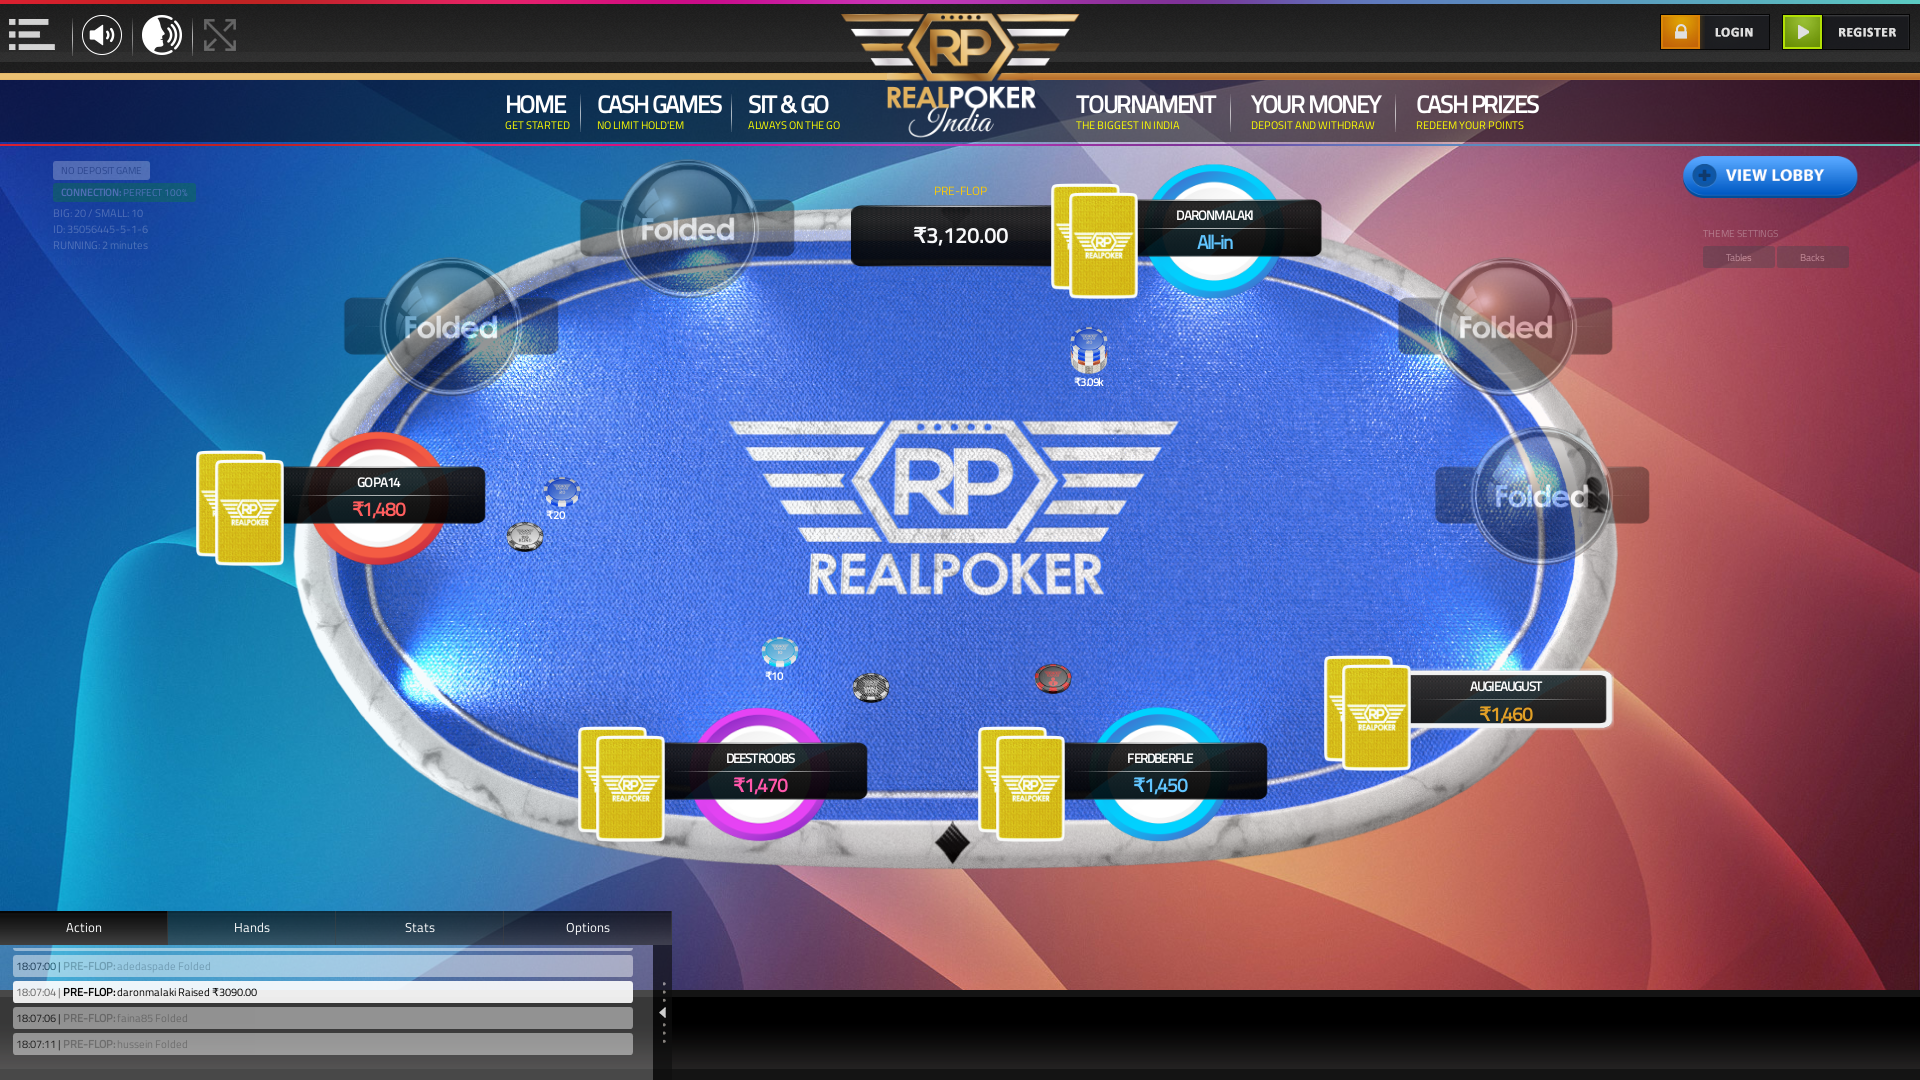 10 player texas holdem table at real poker with the table id 35056445